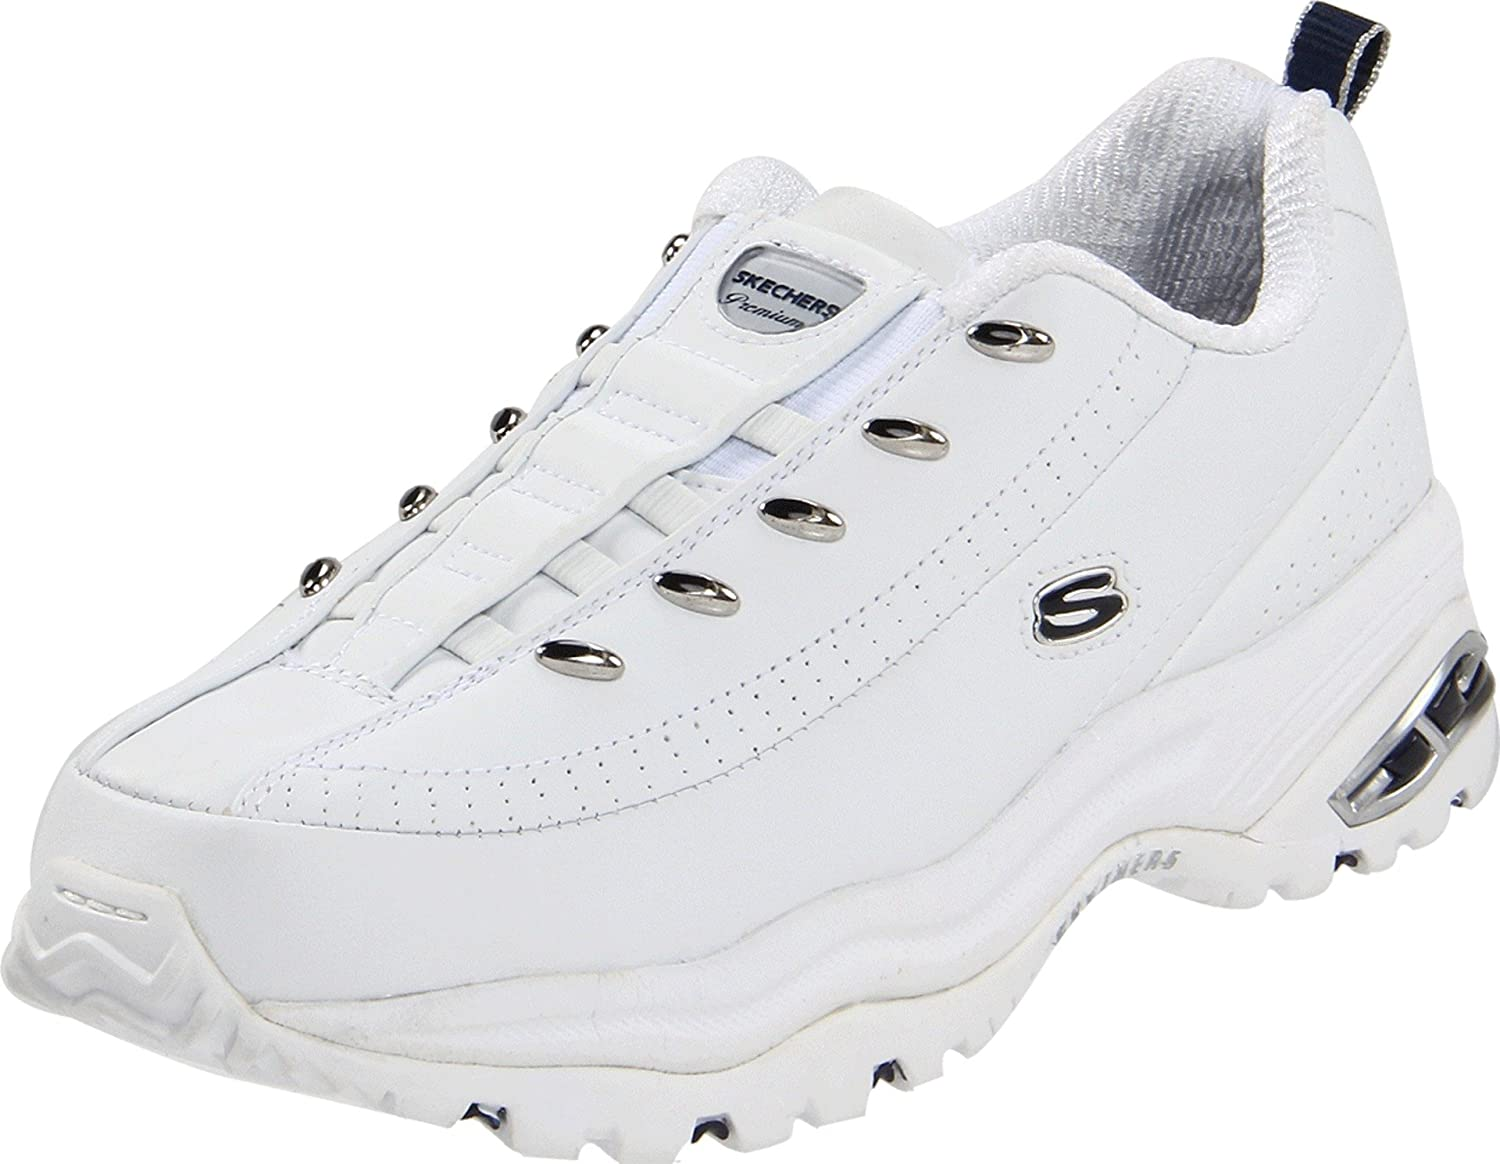 Skechers Sport Women's Premium-Premix Slip-On US|White/Navy Sneaker B000PGWET4 9 W US|White/Navy Slip-On 930820